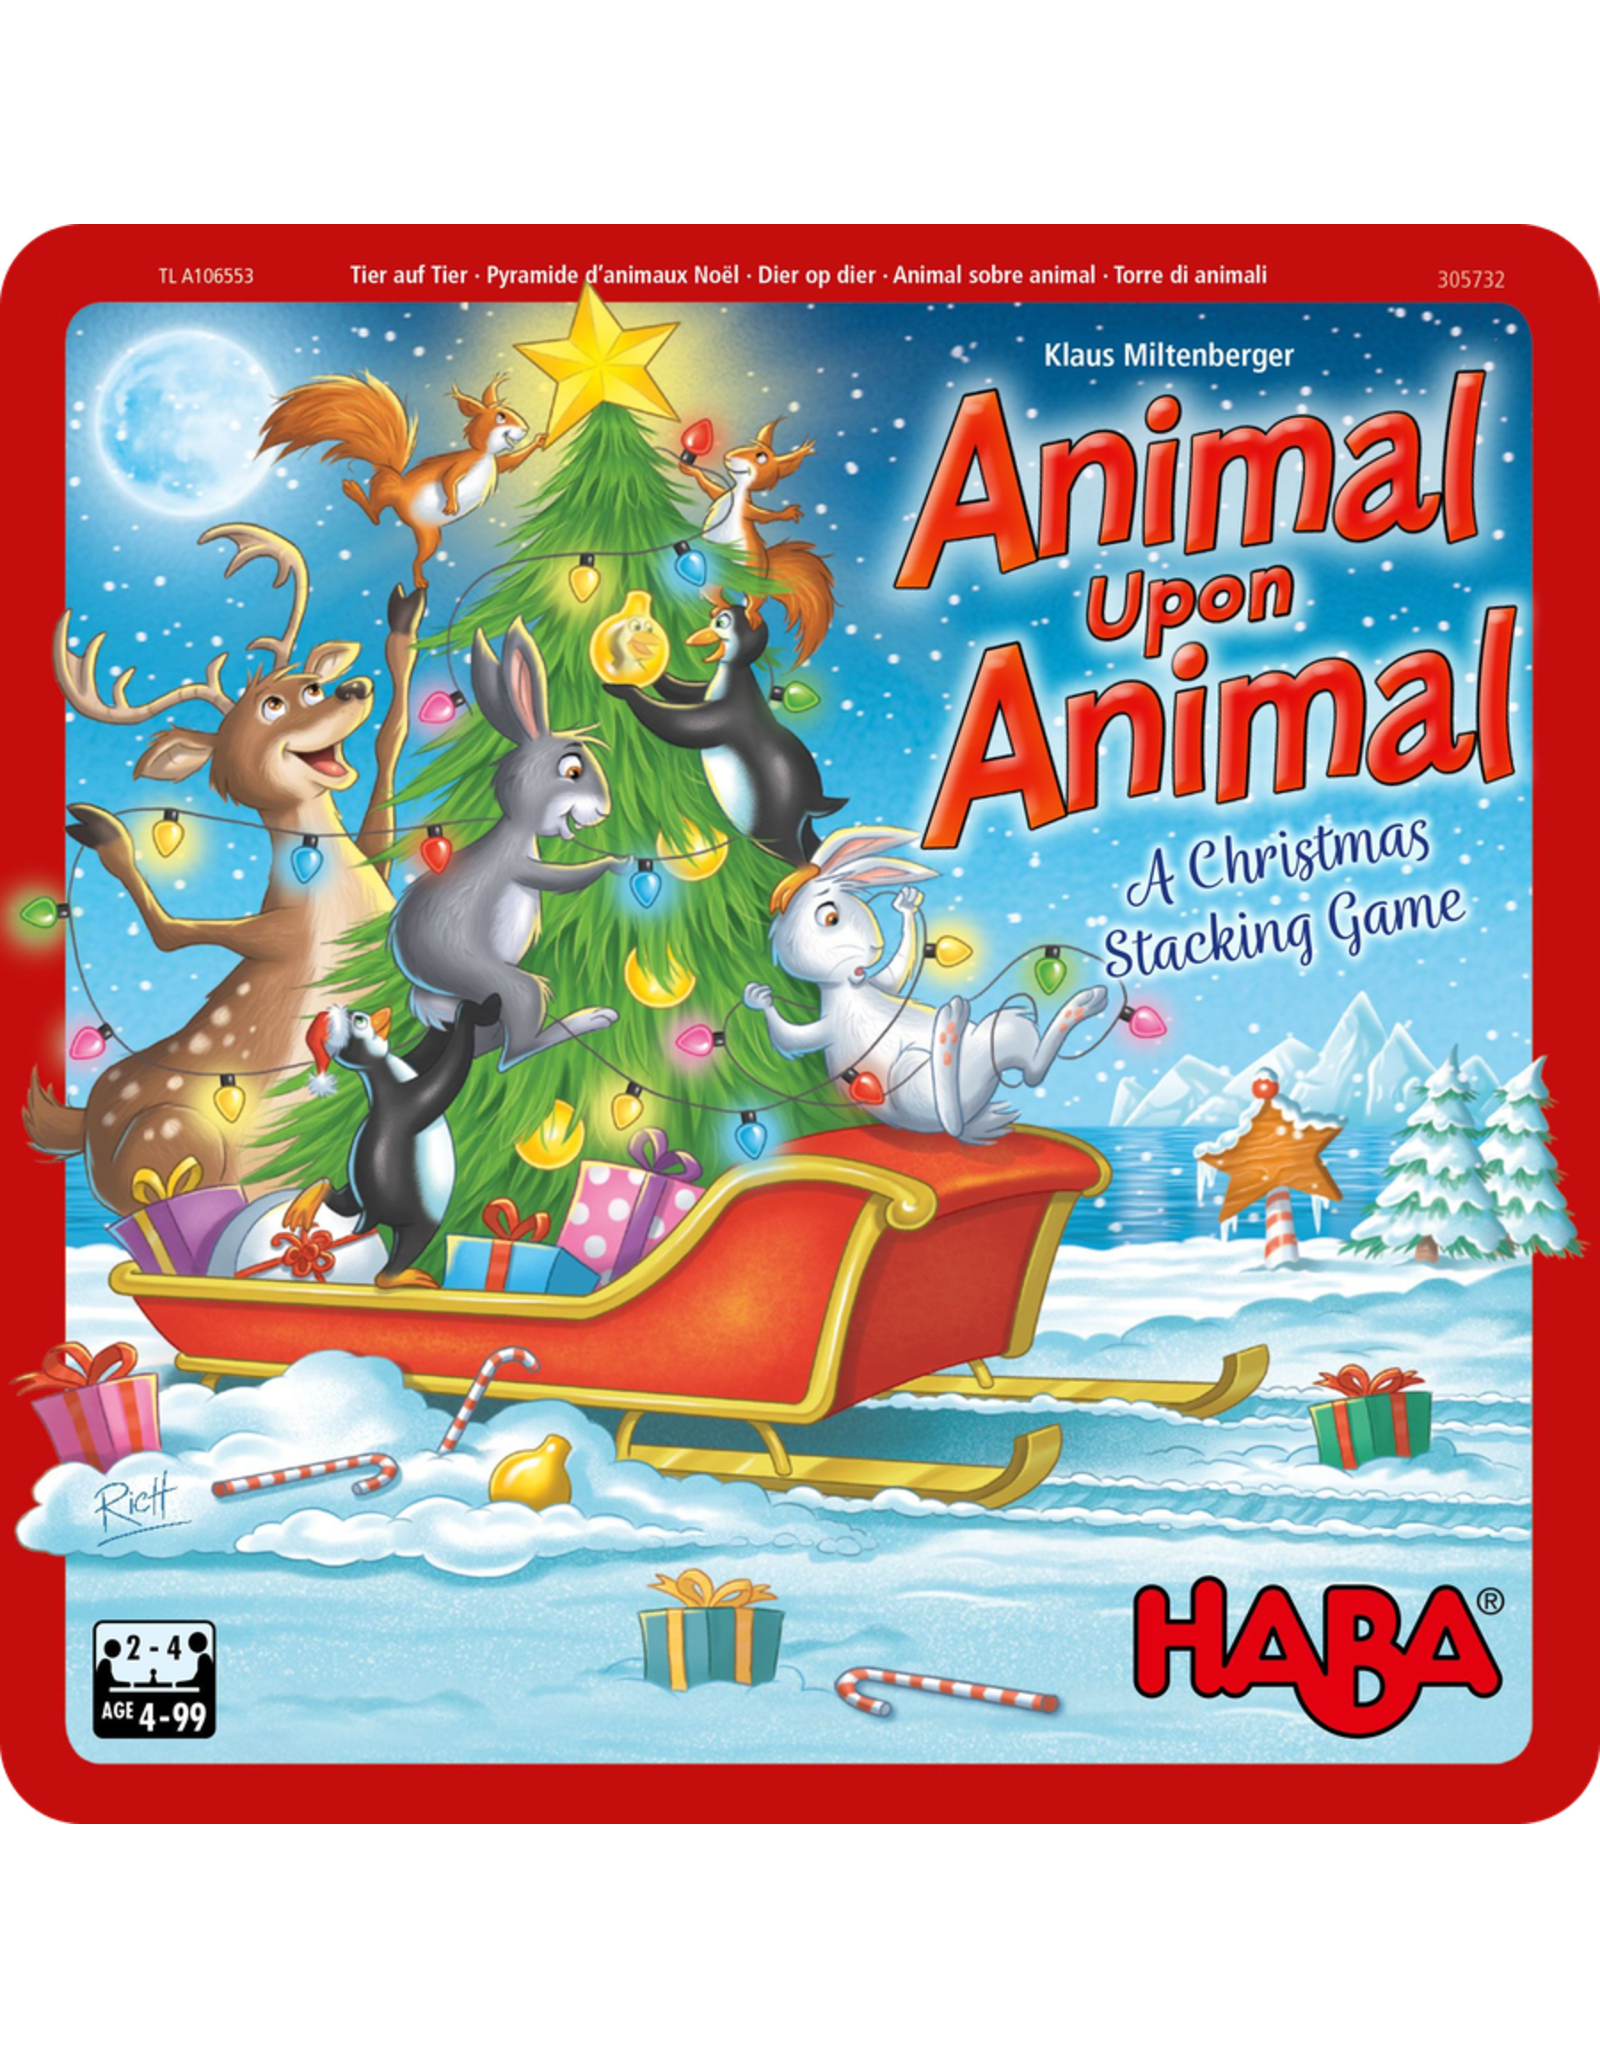 Haba ANIMAL UPON ANIMAL - CHRISTMAS